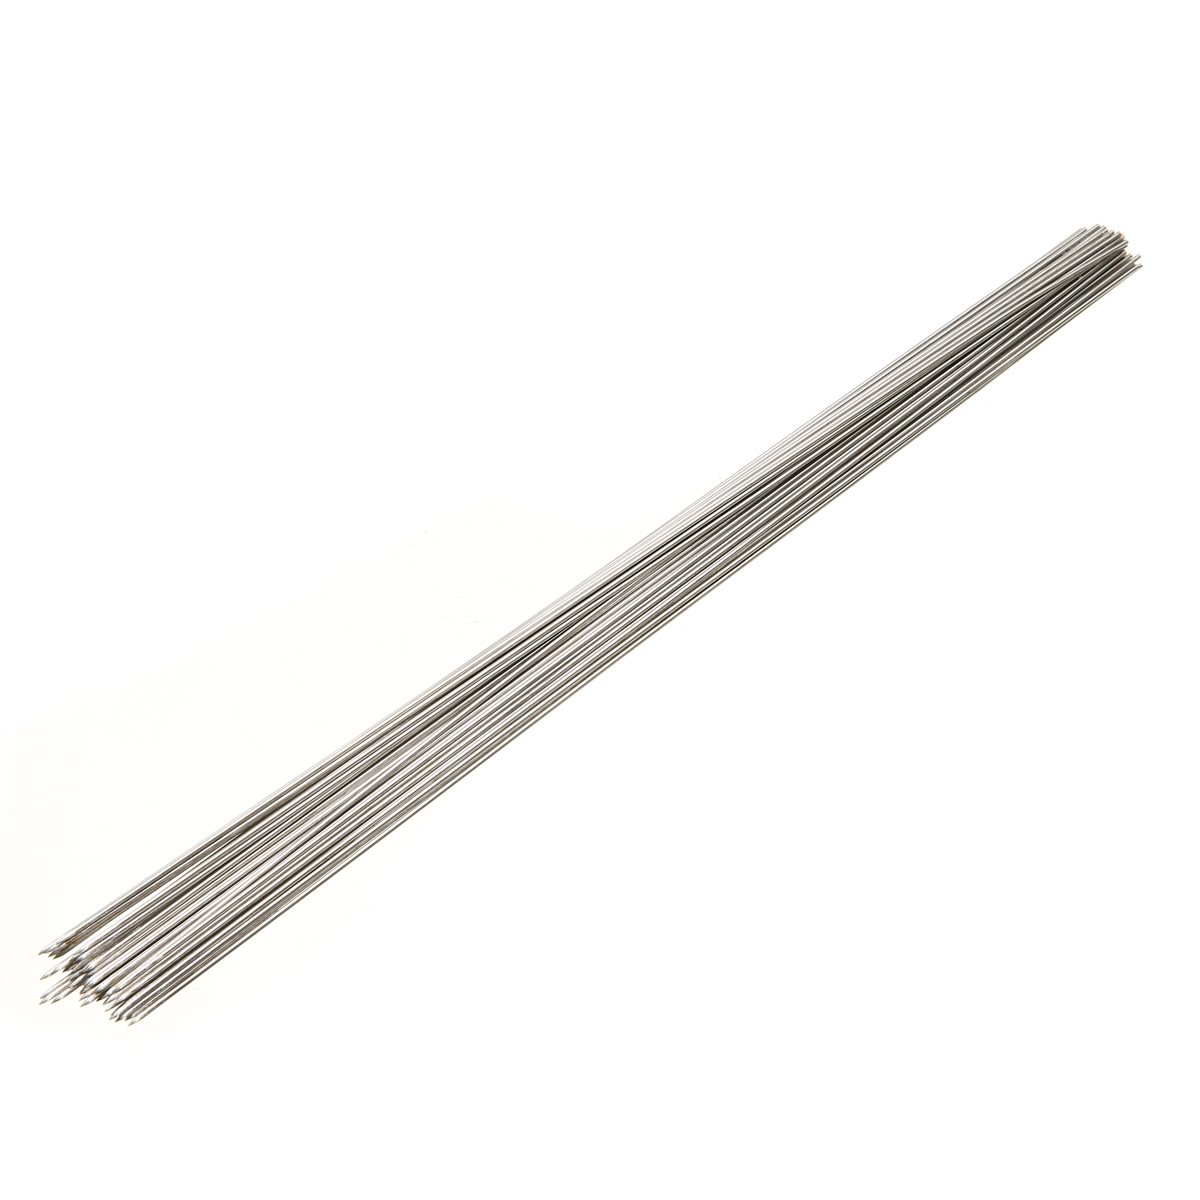 Mayitr 50pcs Stainless Steel Barbecue Skewer BBQ Meat Kebab Sticks Needle 35cm For Kitchen Camping Tools